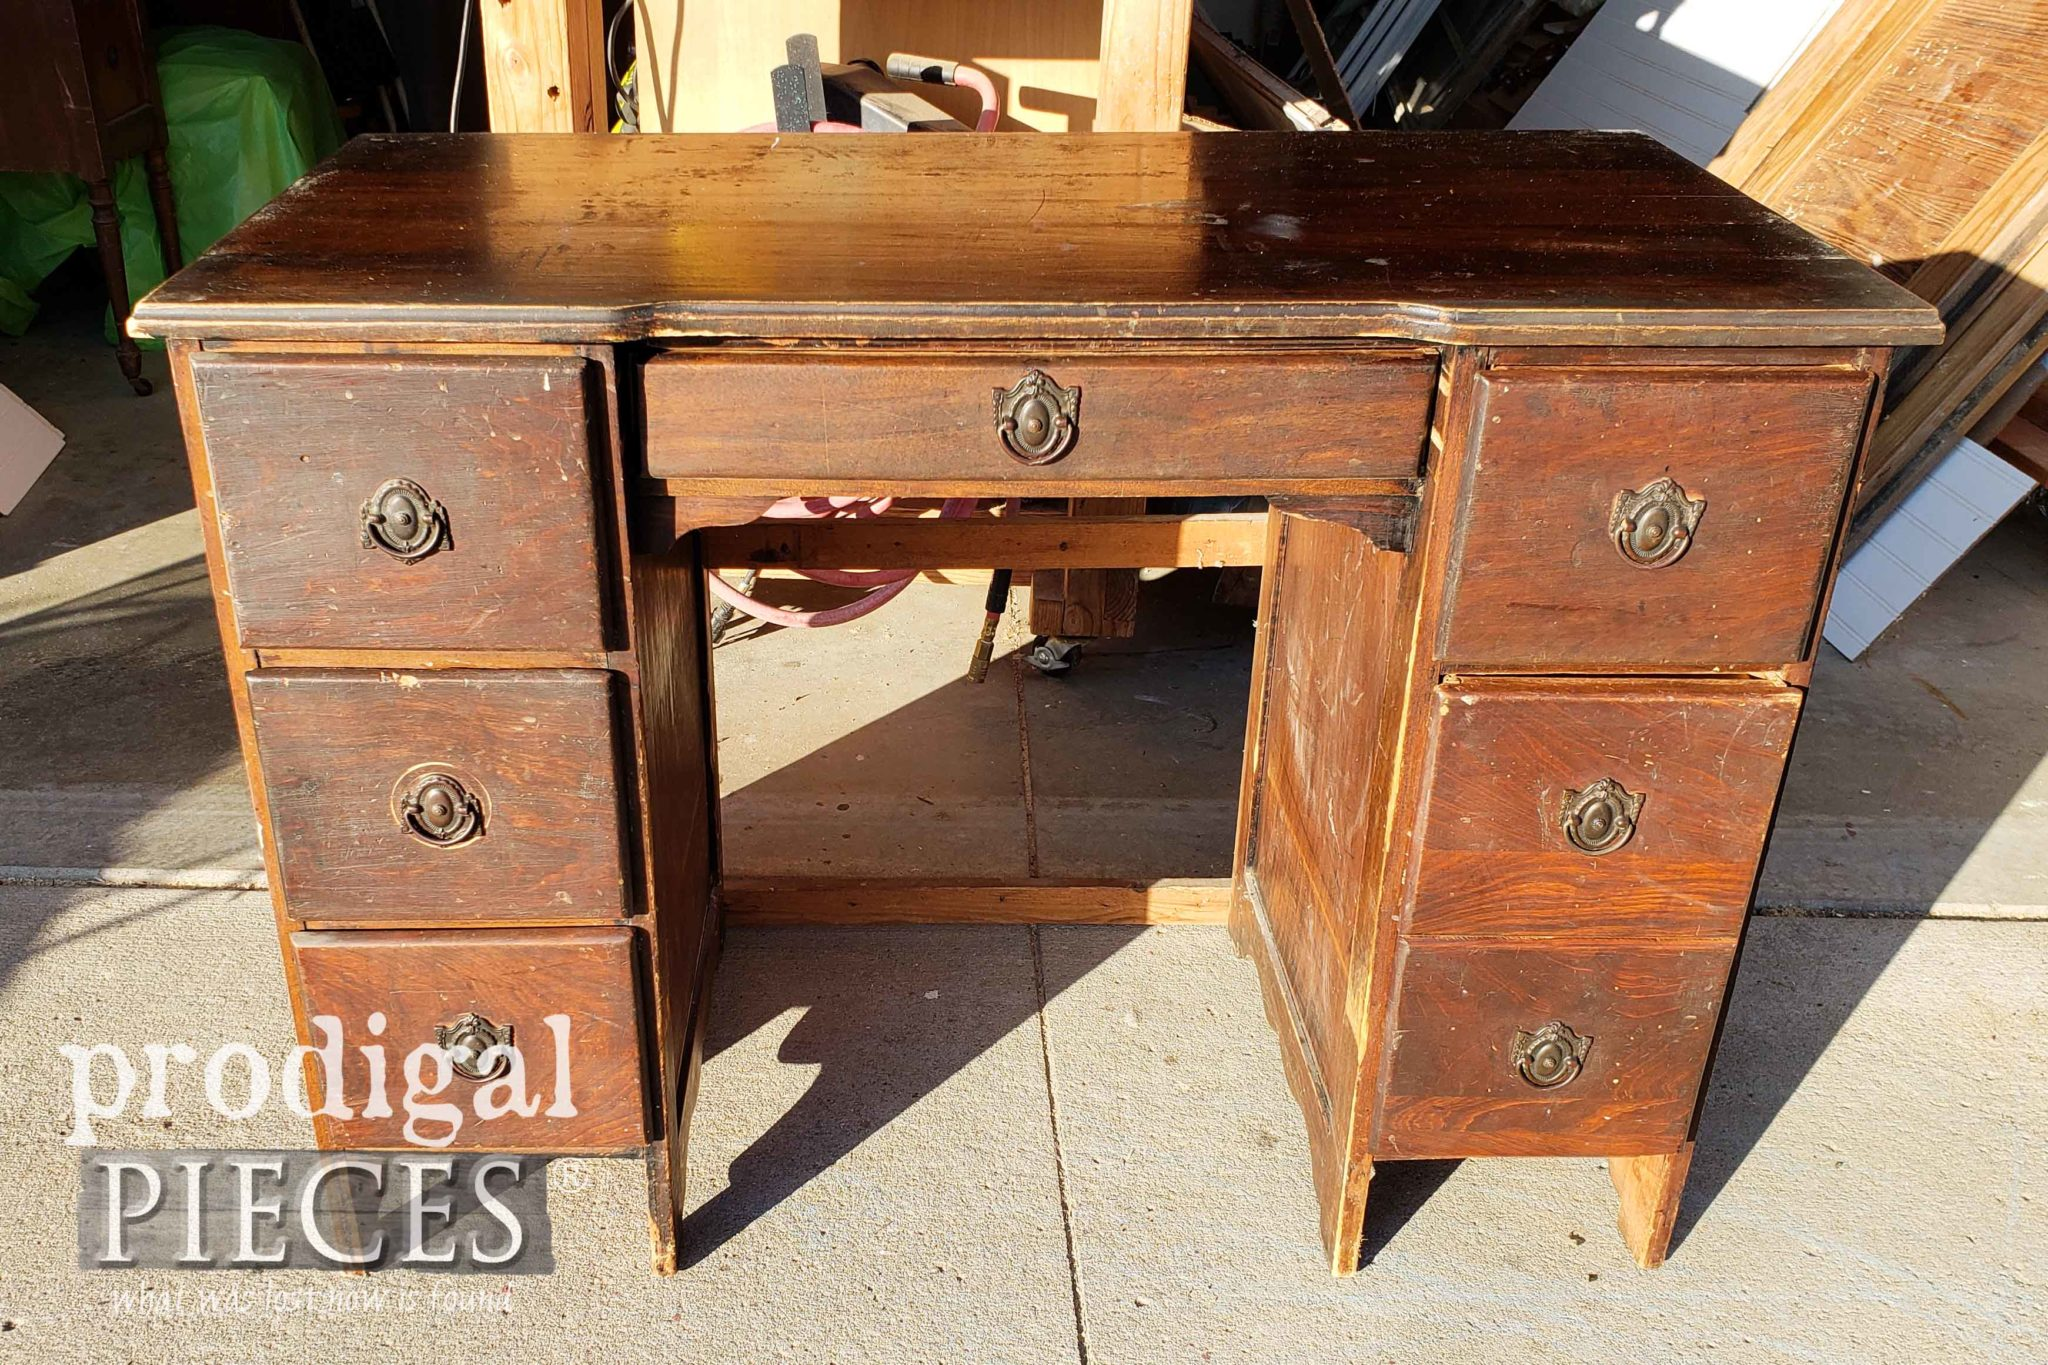 Antique Desk Before Being Made into Nightstands | prodigalpieces.com